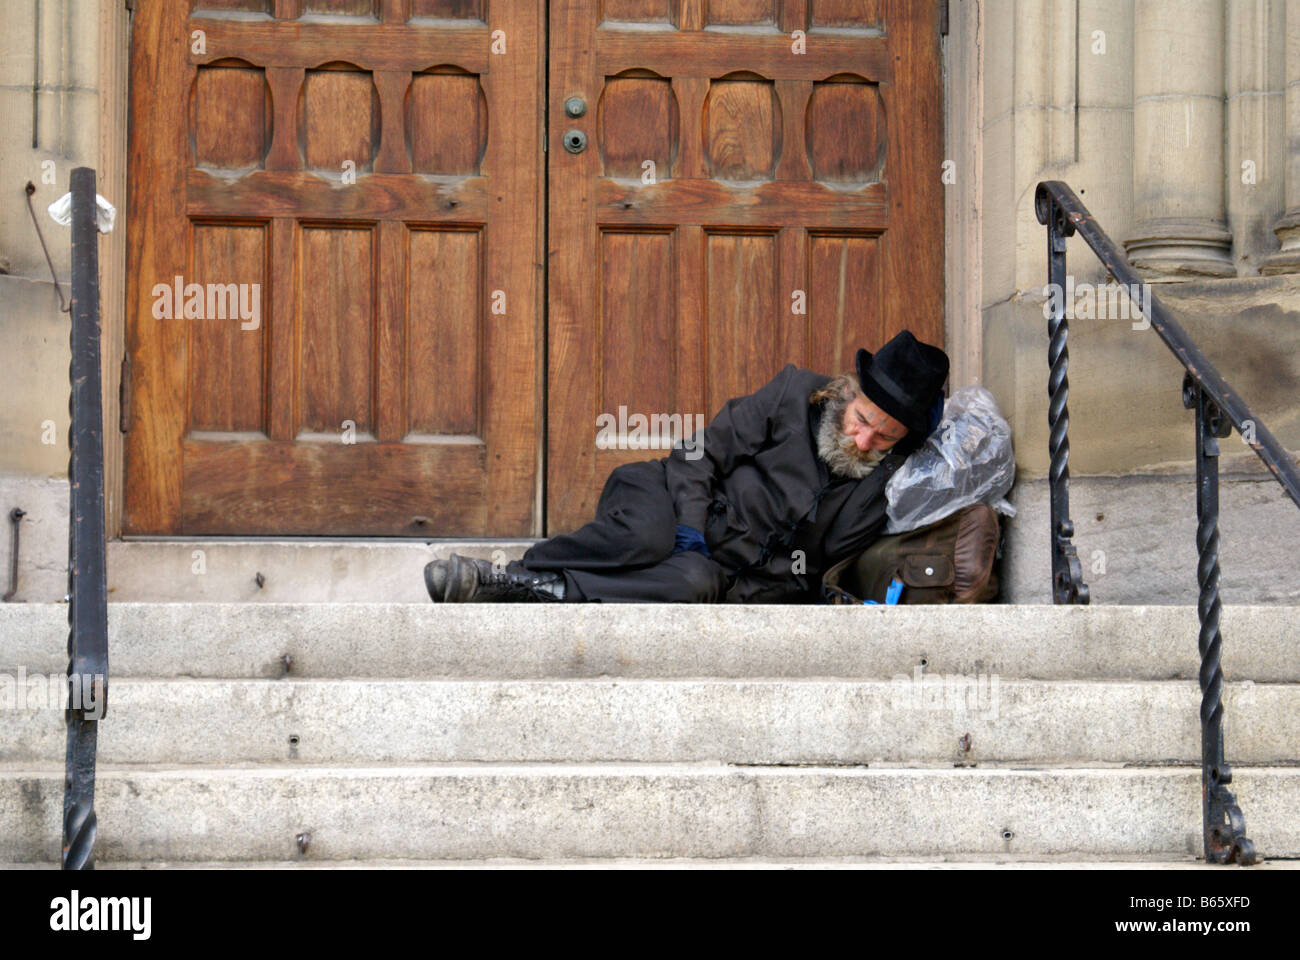 elderly-homeless-man-sleeping-in-a-doorw